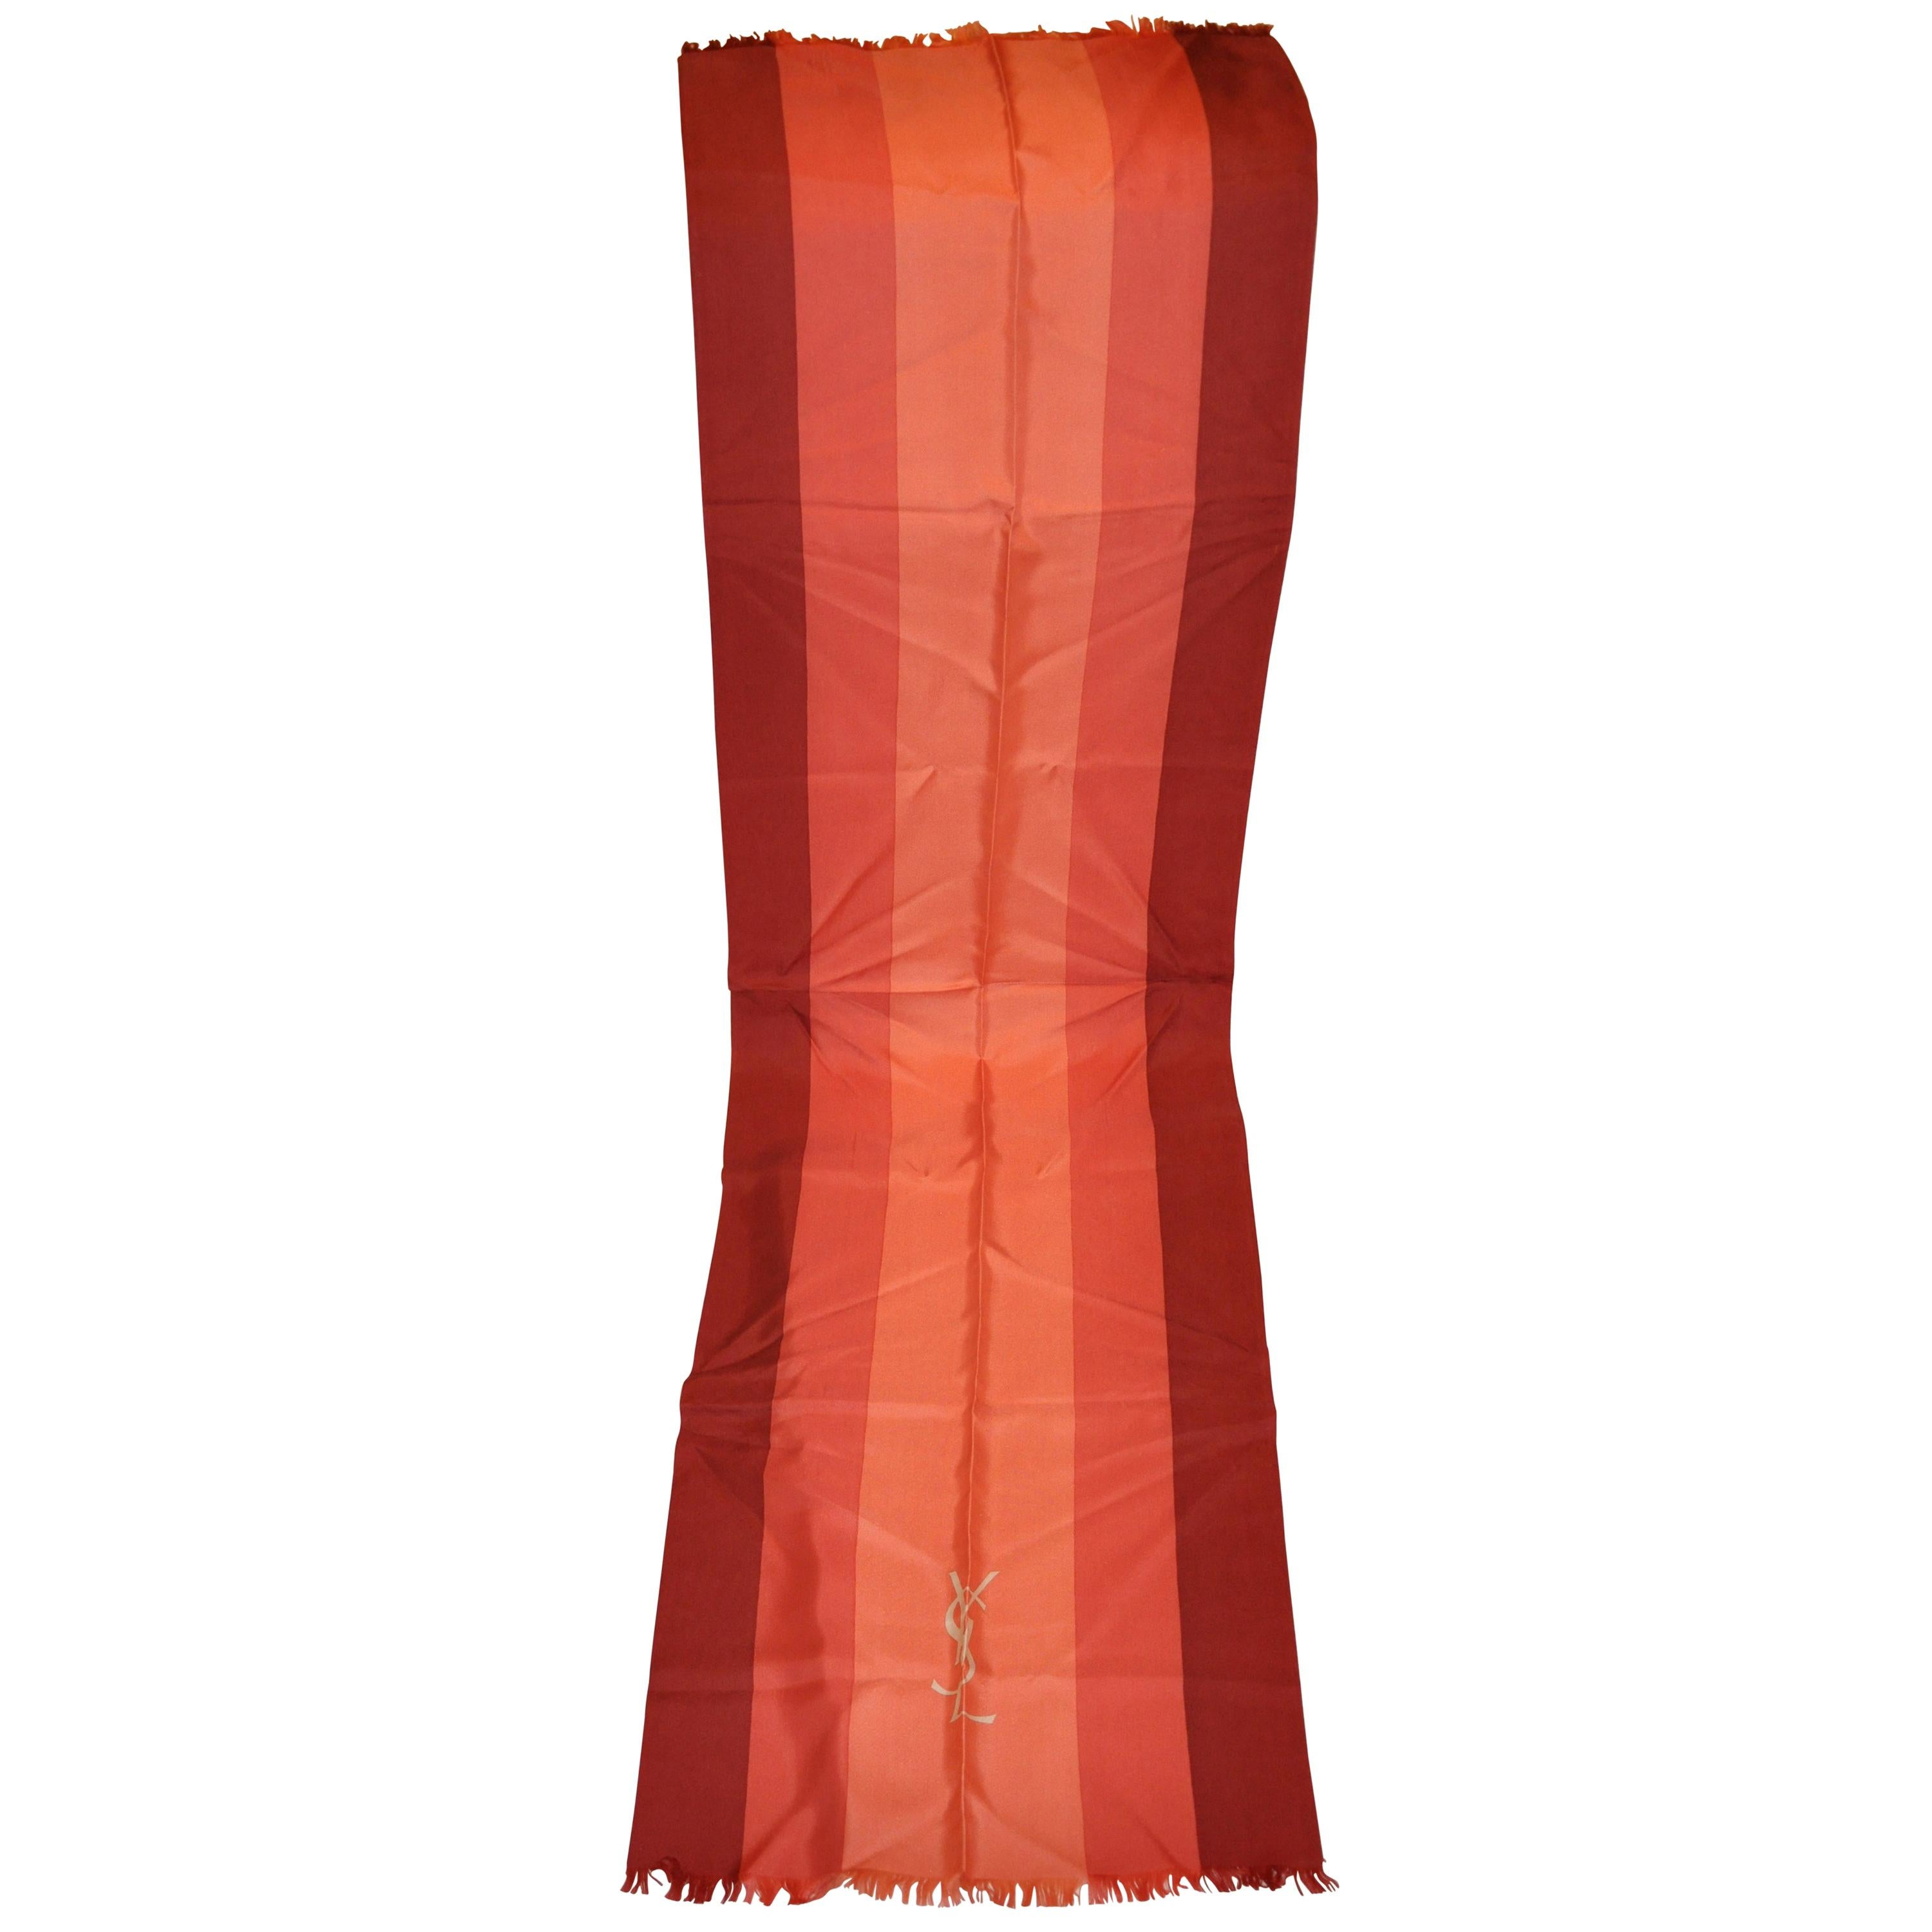 """Yves Saint Laurent Large Iconic """"Shades of Coral"""" Silk Fringed Scarf"""